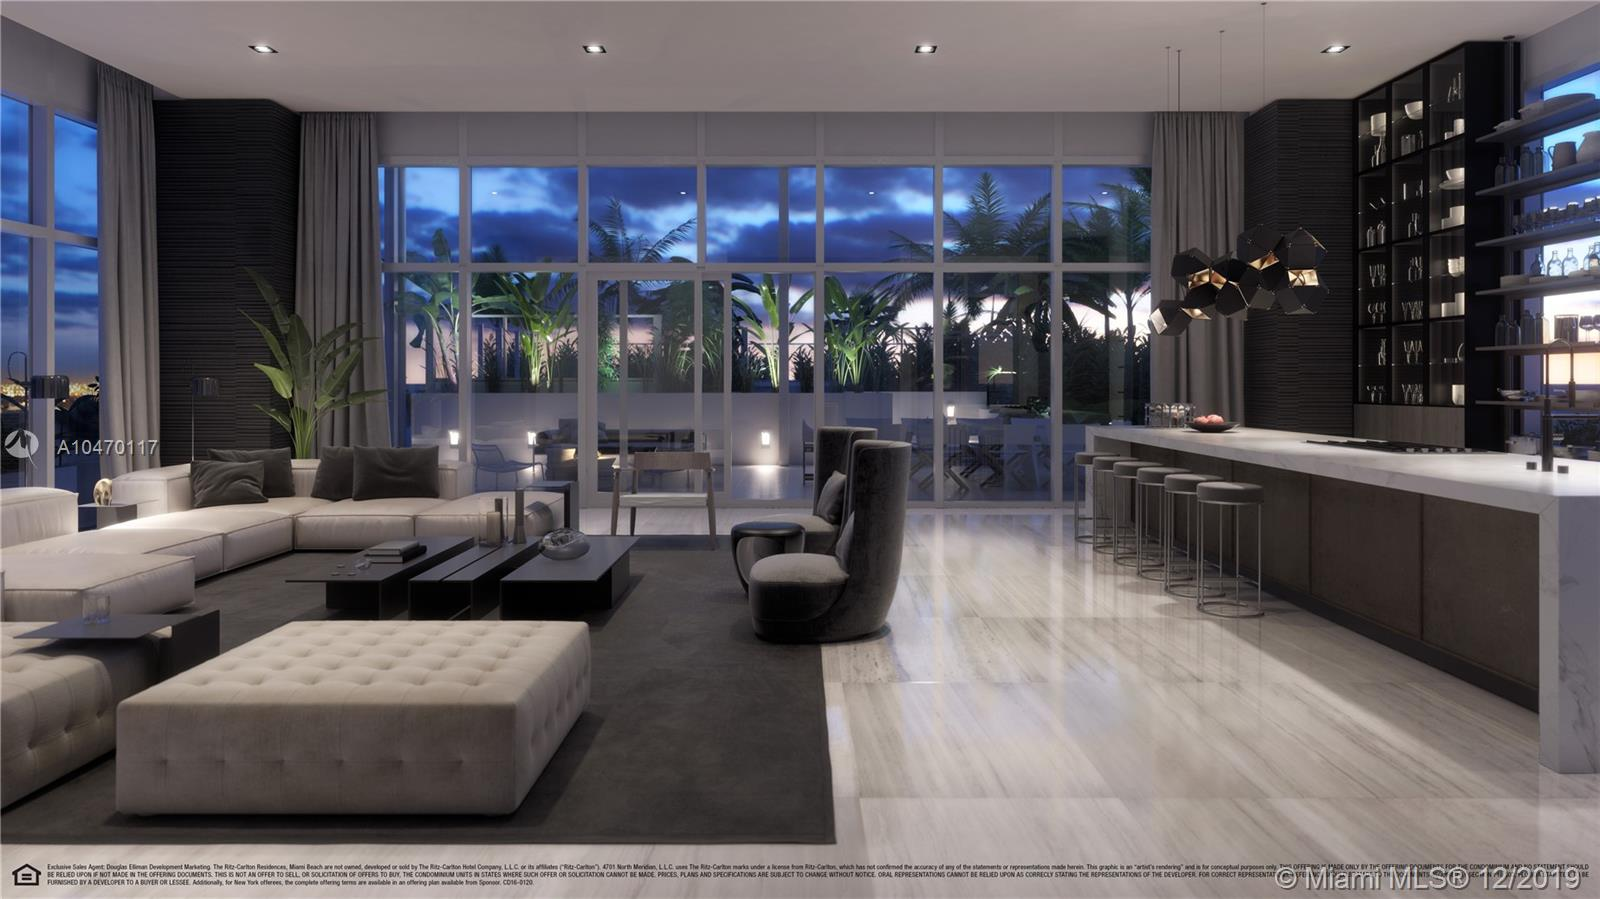 One of the five exclusive penthouses that crown the top floor of The Ritz-Carlton Residences, Miami Beach. This residence overlooks Miami Beach, Biscayne Bay, and Downtown Miami. Among its most defining characteristics are over 10,000 square feet of living space including a private elevator and foyer, stone and wood flooring throughout, and floor-to-ceiling windows. An expansive terrace with over 4,000 square feet features a private pool, two plunge pools, outdoor kitchen. Schedule a private appointment and visit the first Model Residence Designed by Piero Lissoni today.